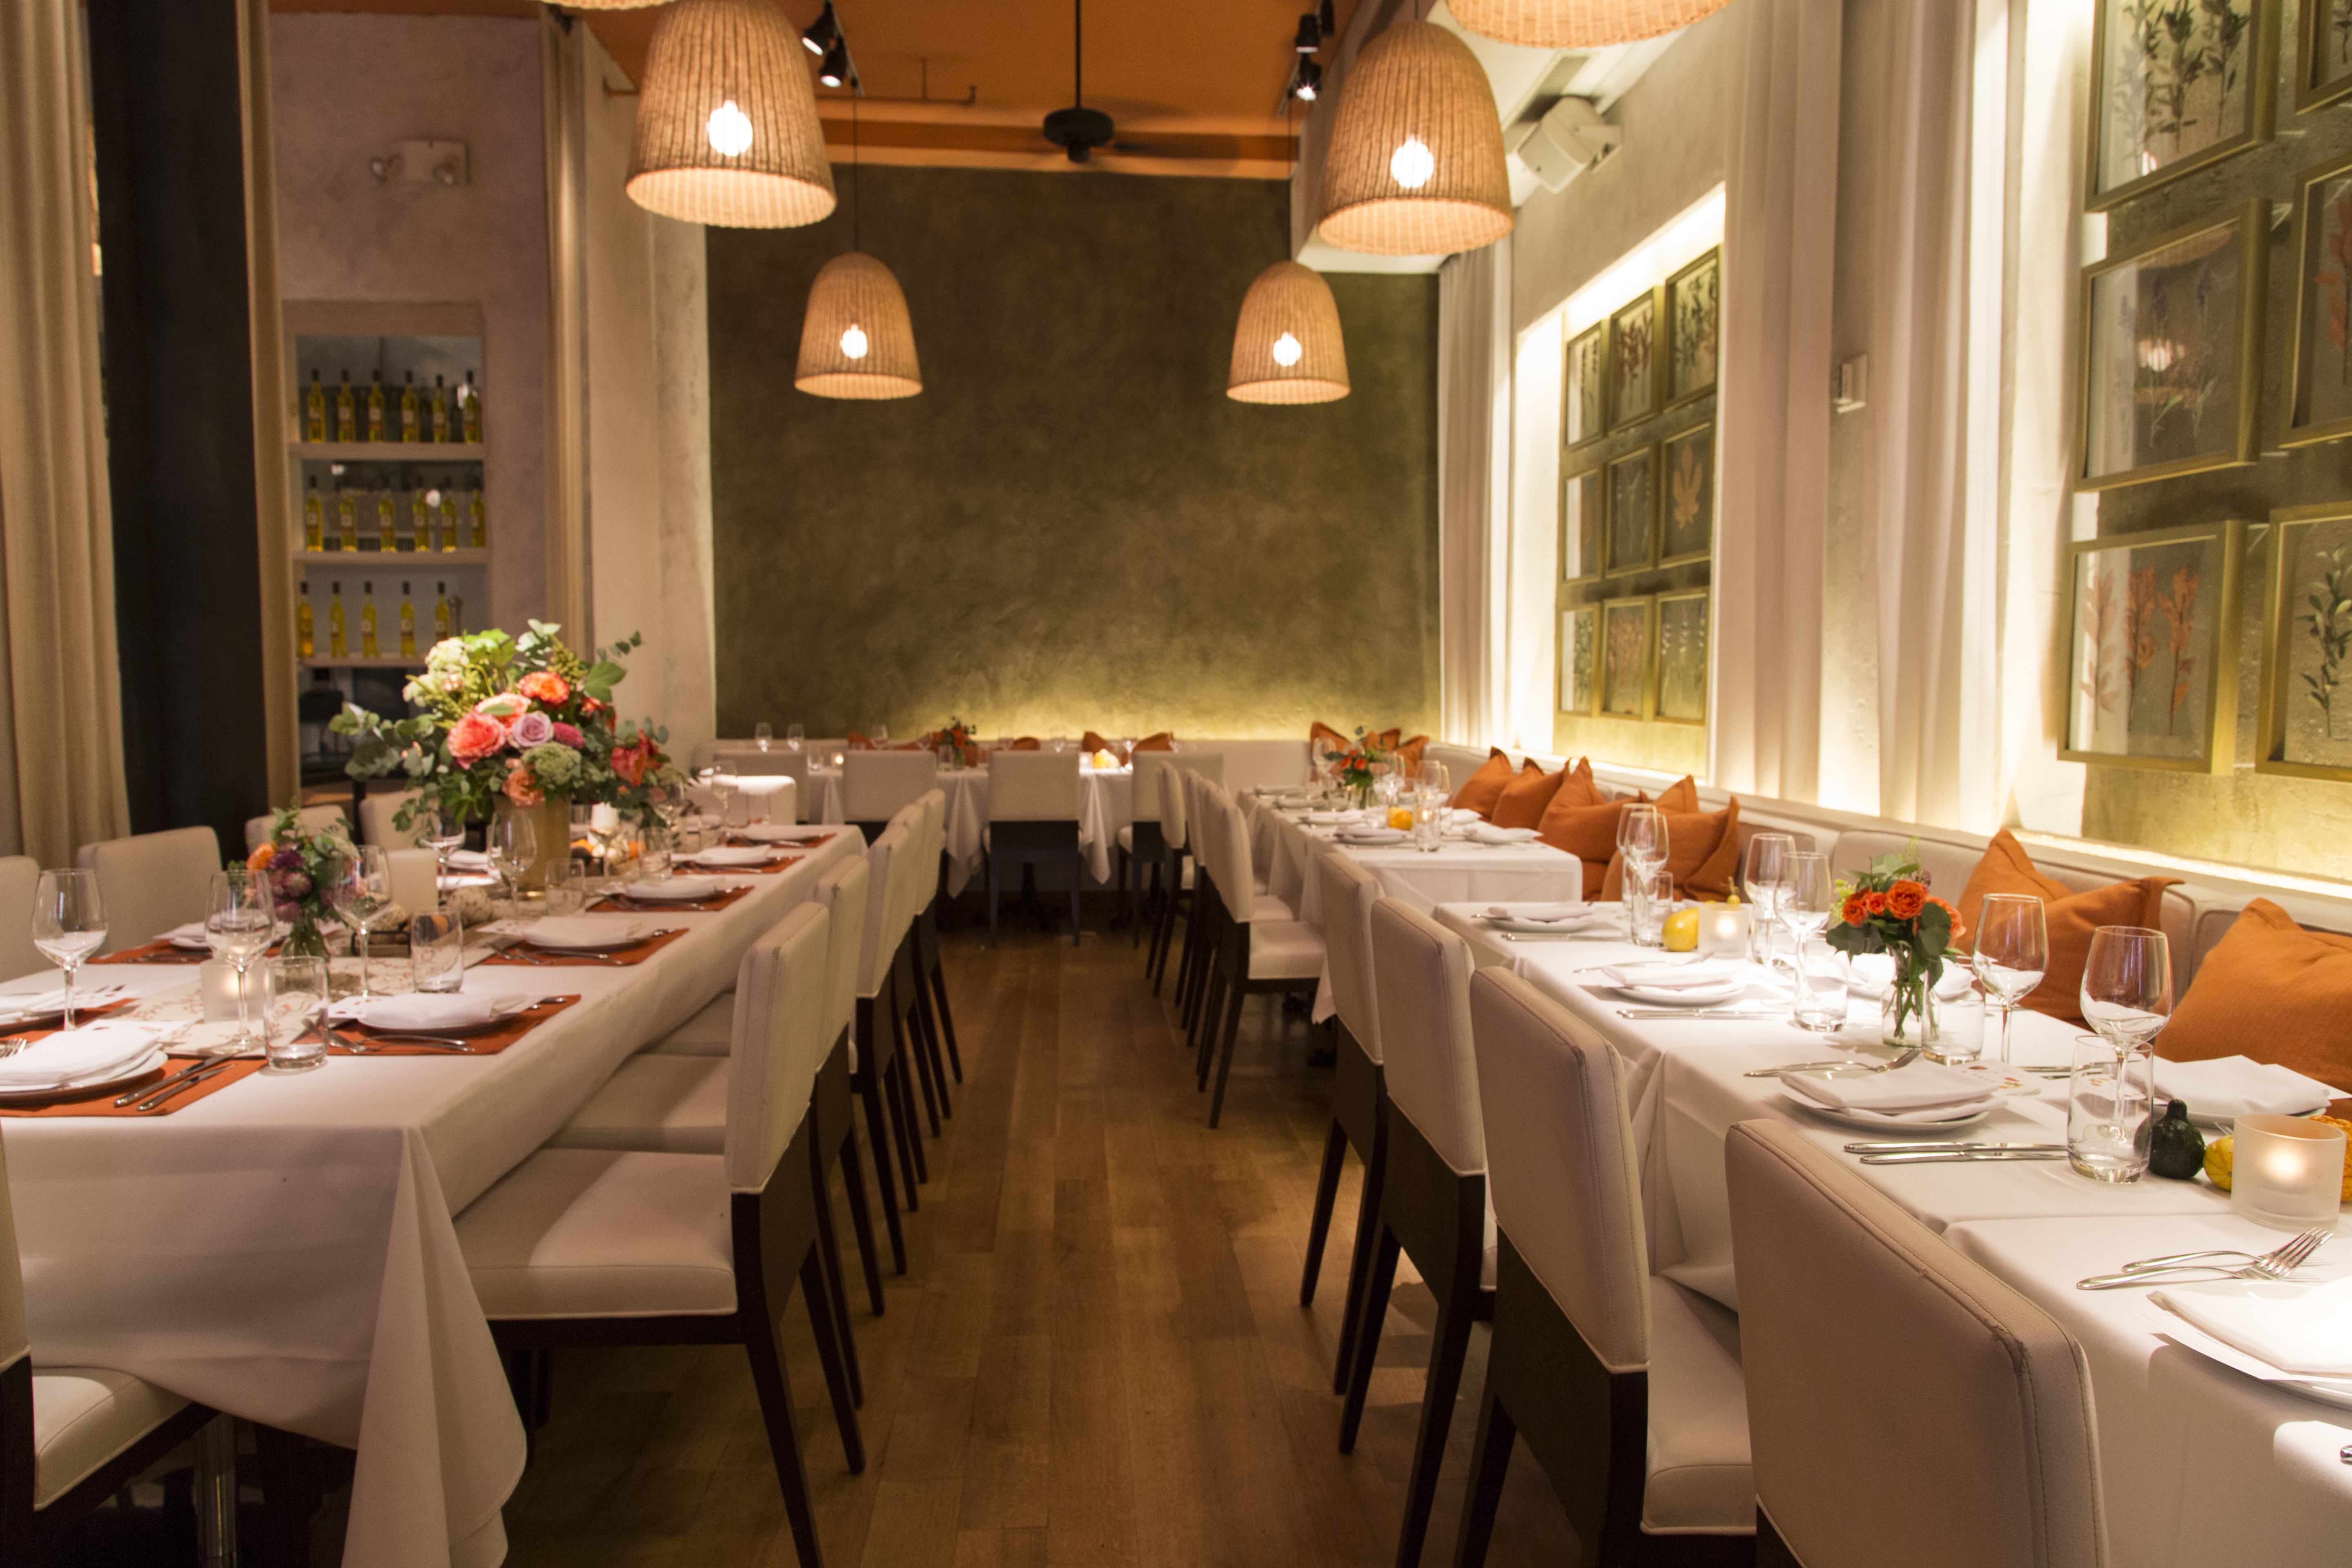 Photo #12 White Dining Room at Meatpacking District Restaurant